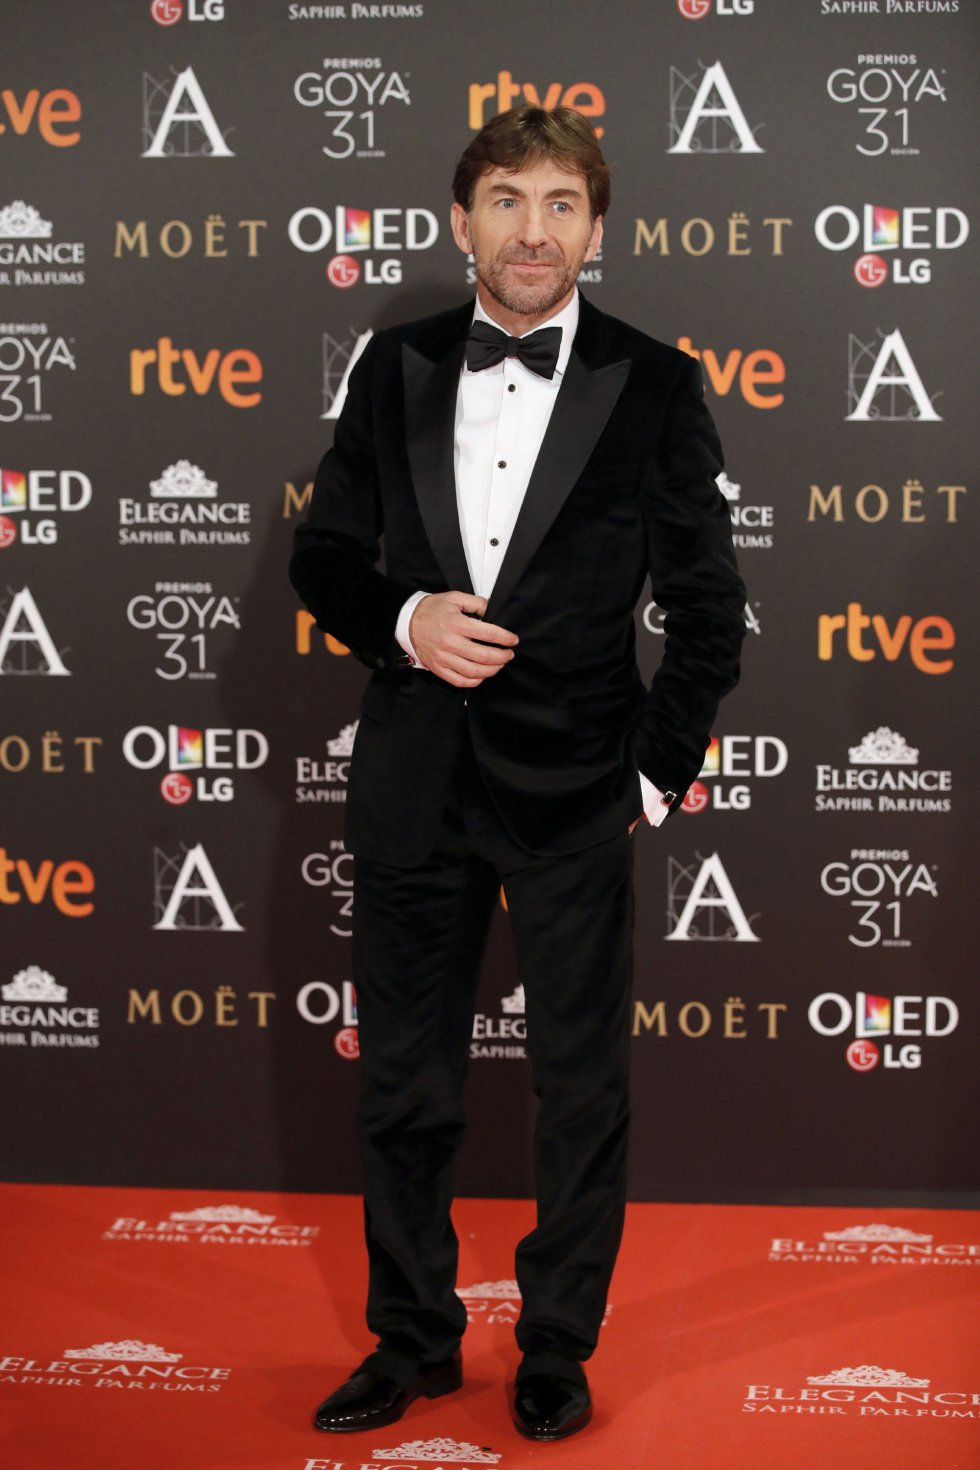 El actor Antonio de la Torre